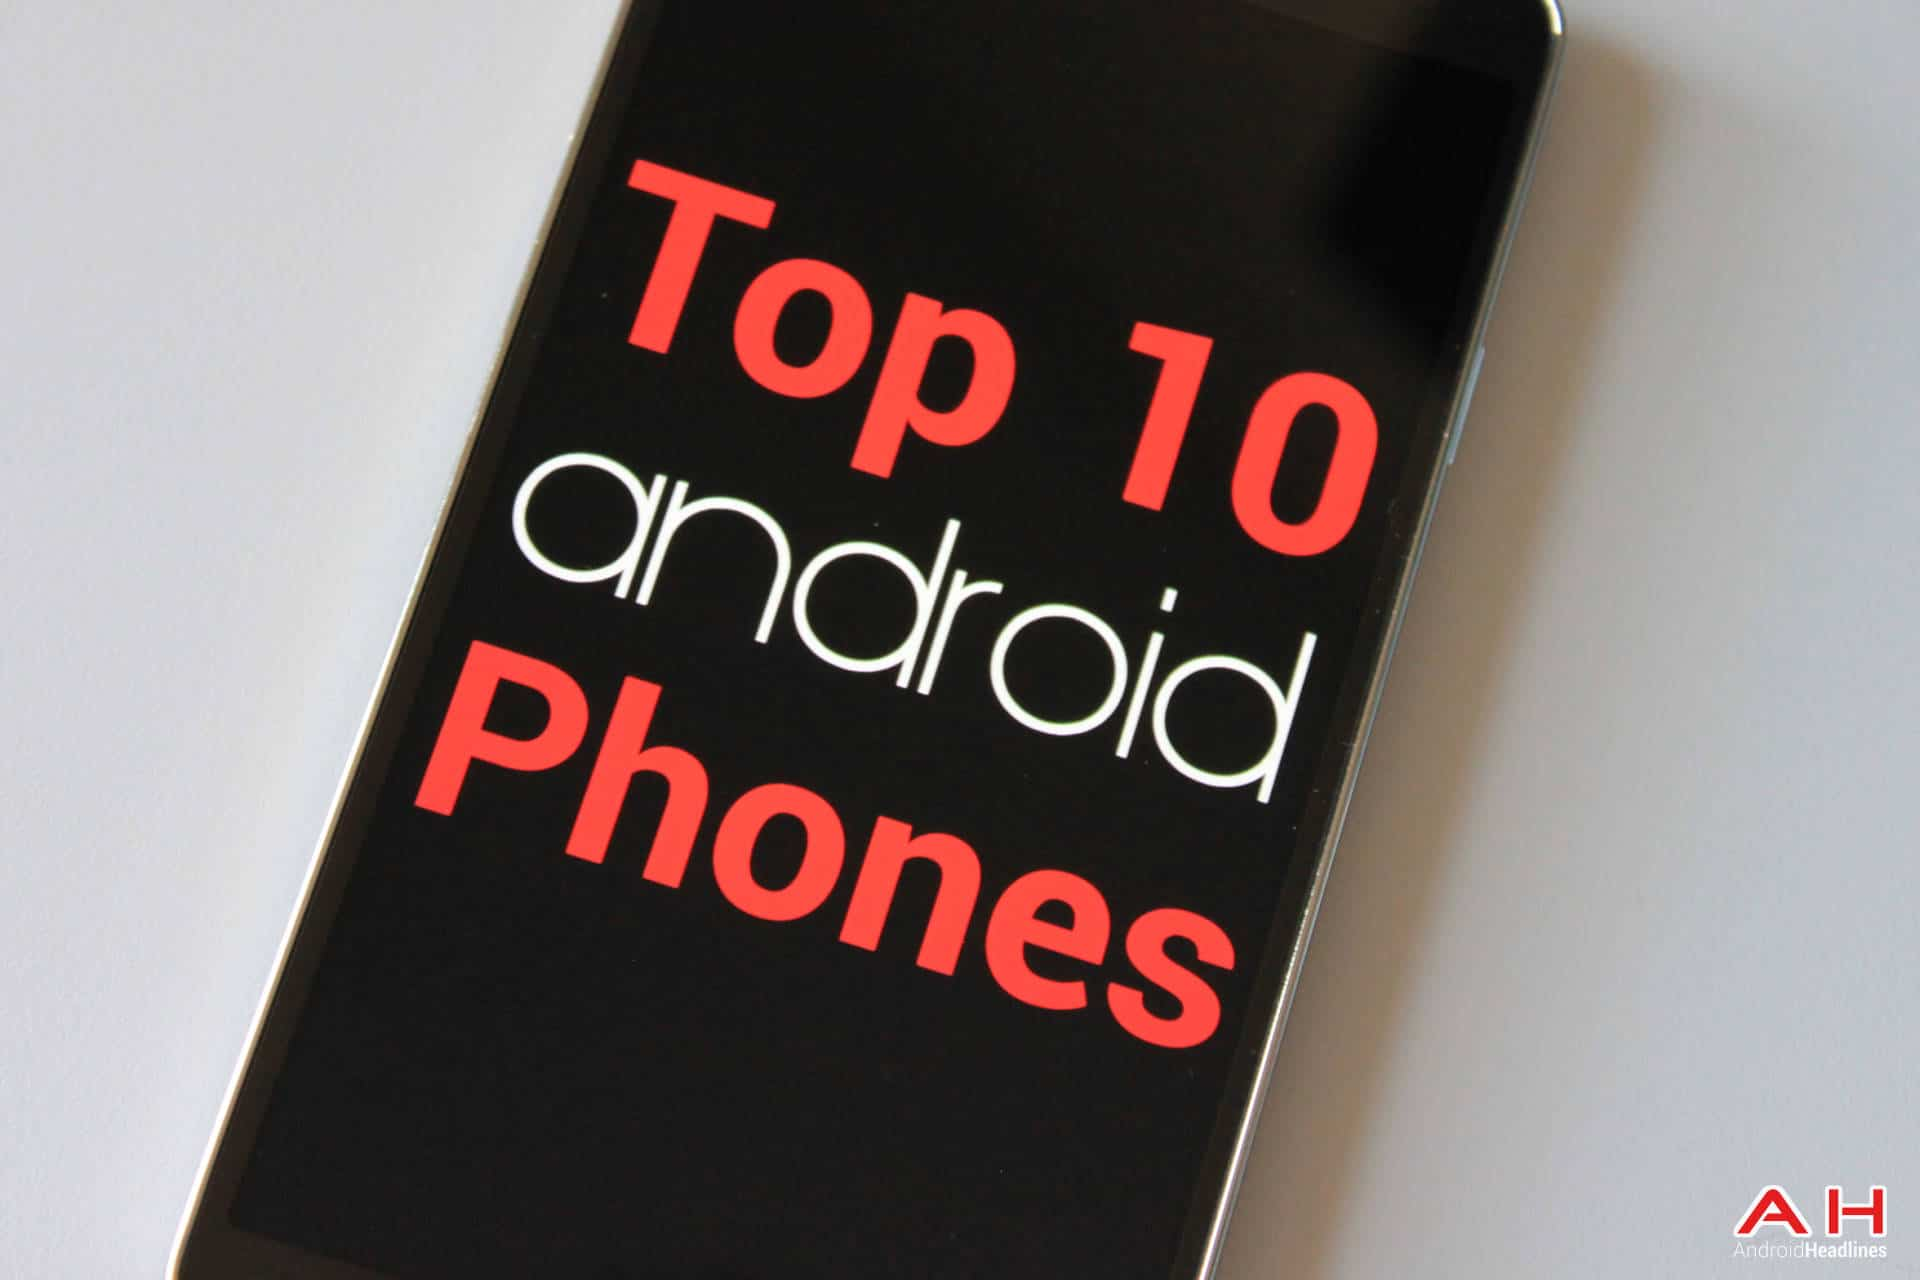 10 best android apps 2014 in india